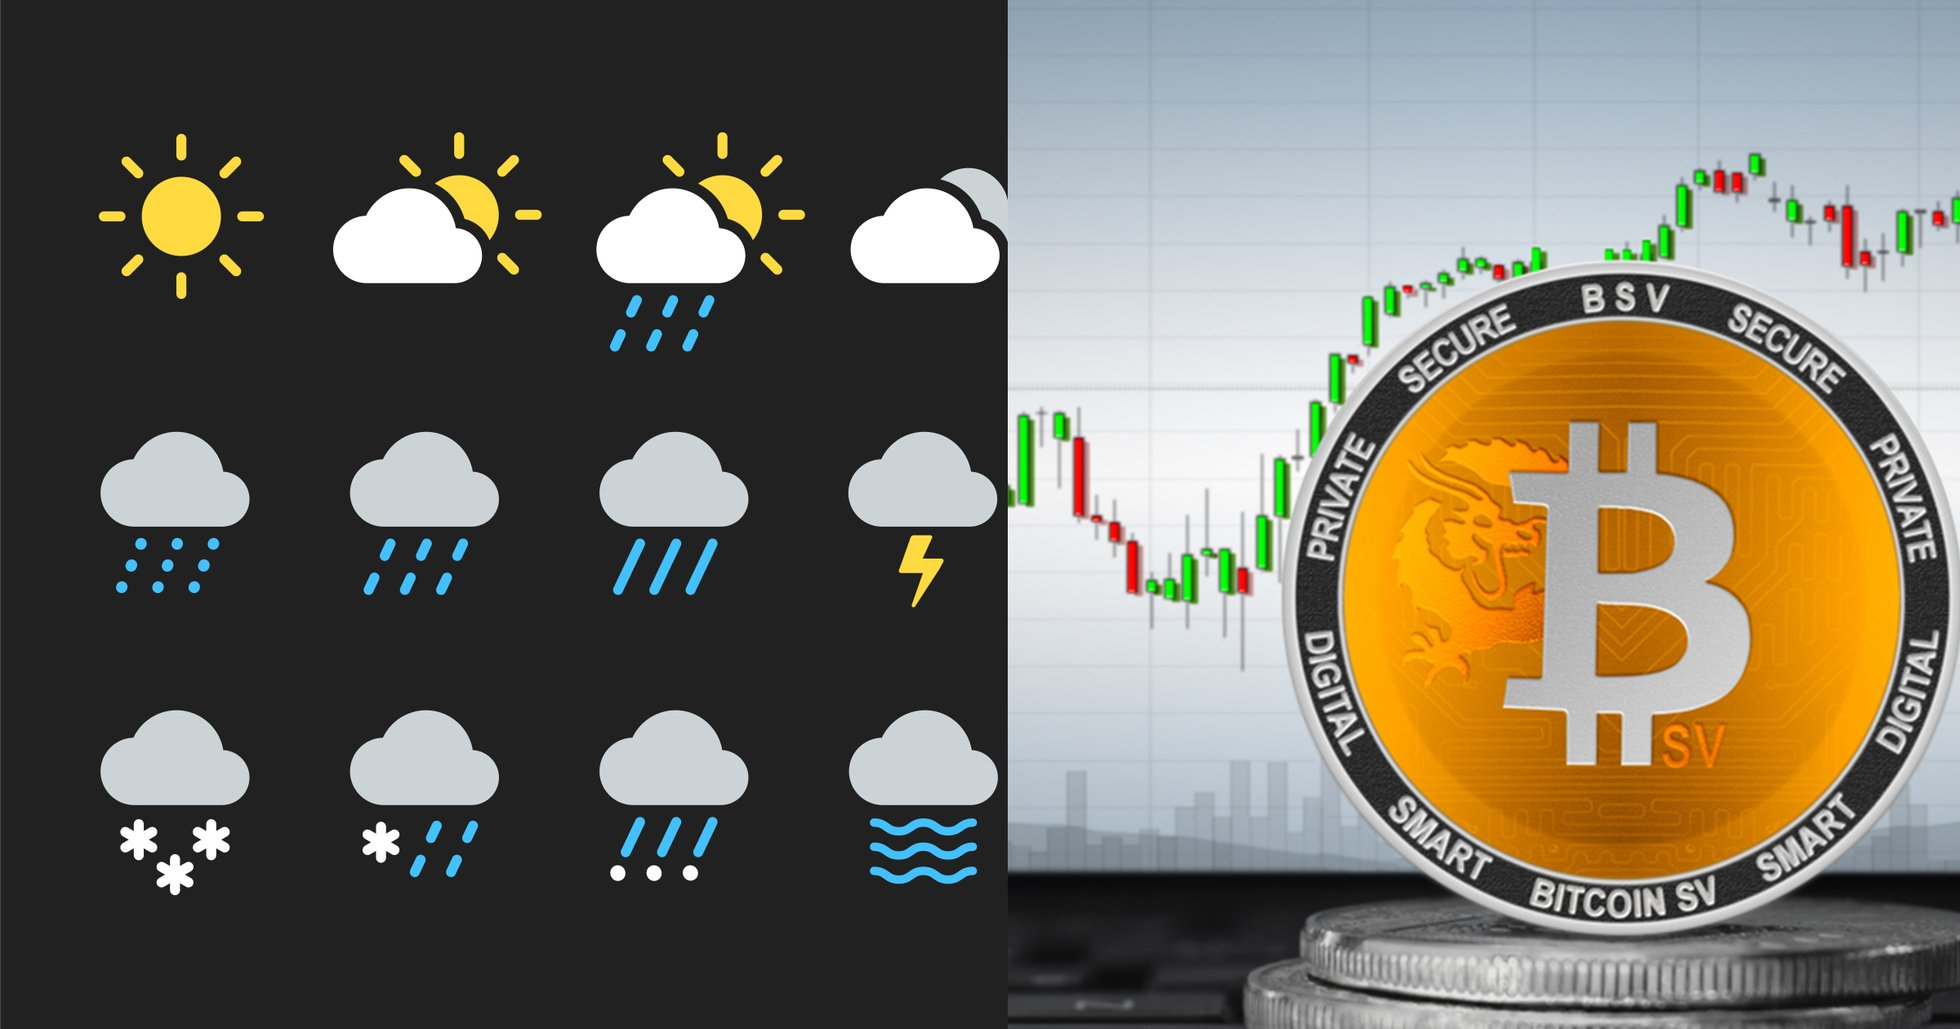 New data reveals: 98 % of all bitcoin sv transactions made in weather app